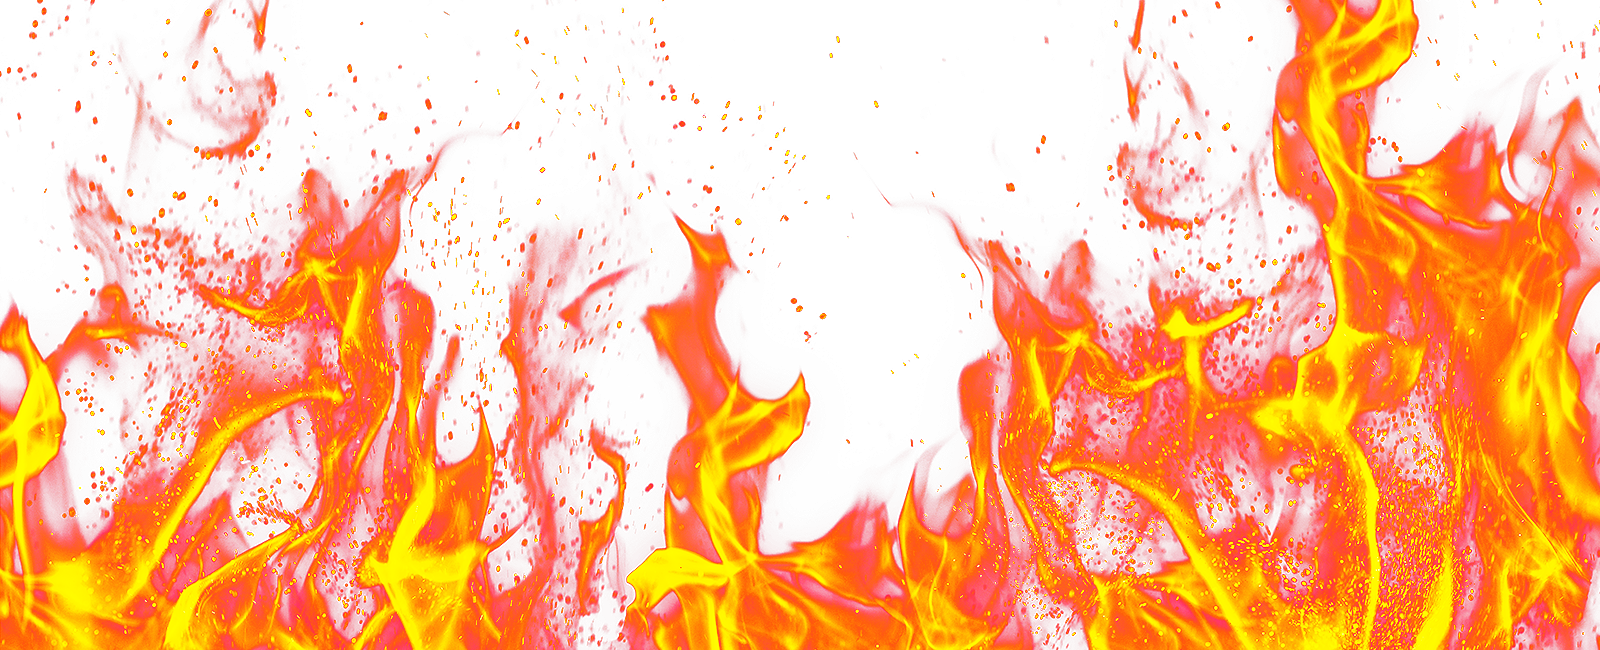 Fire Flames Icon Clipart 14485